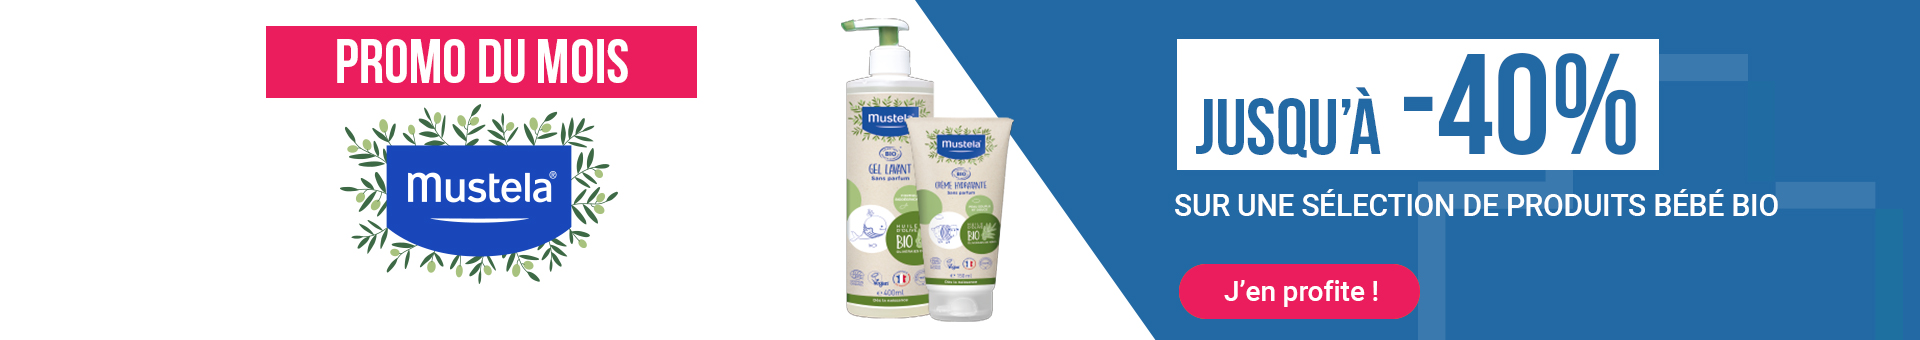 shop-mm-08-2020-mustela-mobile-fr.jpg